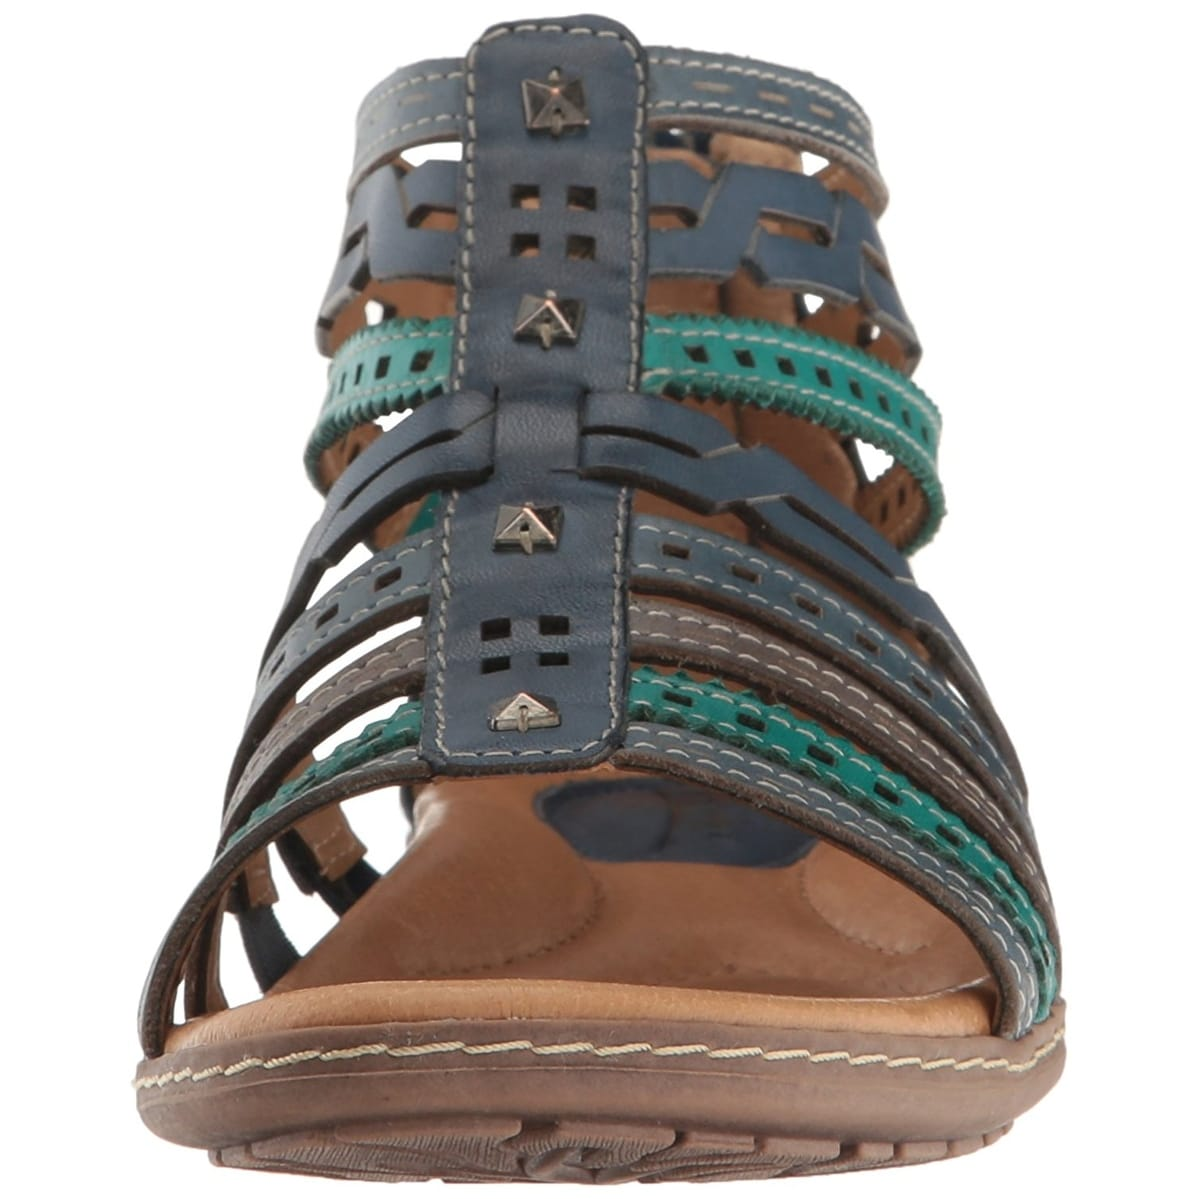 2b48fc35af75 Shop Earth Womens Bay Leather Open Toe Casual Gladiator Sandals - Free  Shipping Today - Overstock - 19855144